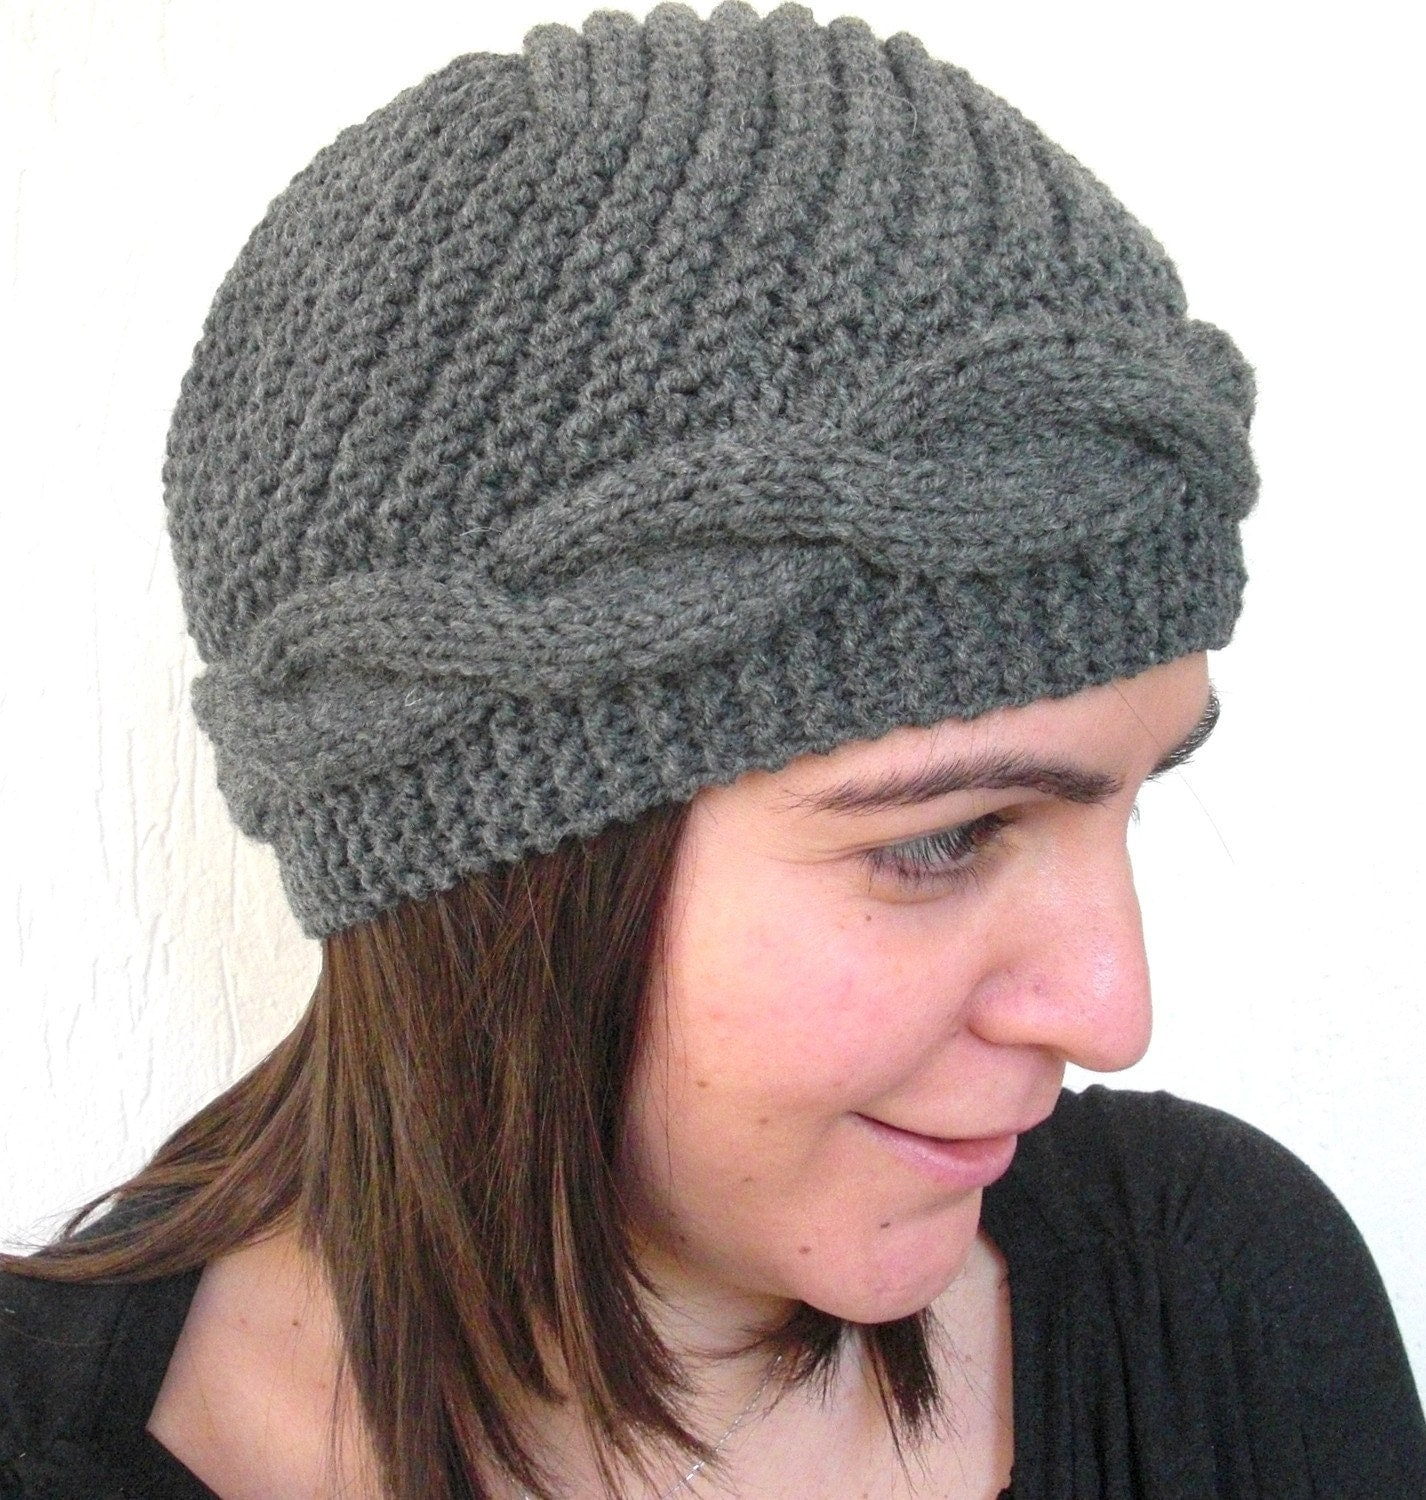 Victorian  Hat   Hand Knit  BERETWinter Accessories by Ebruk from etsy.com